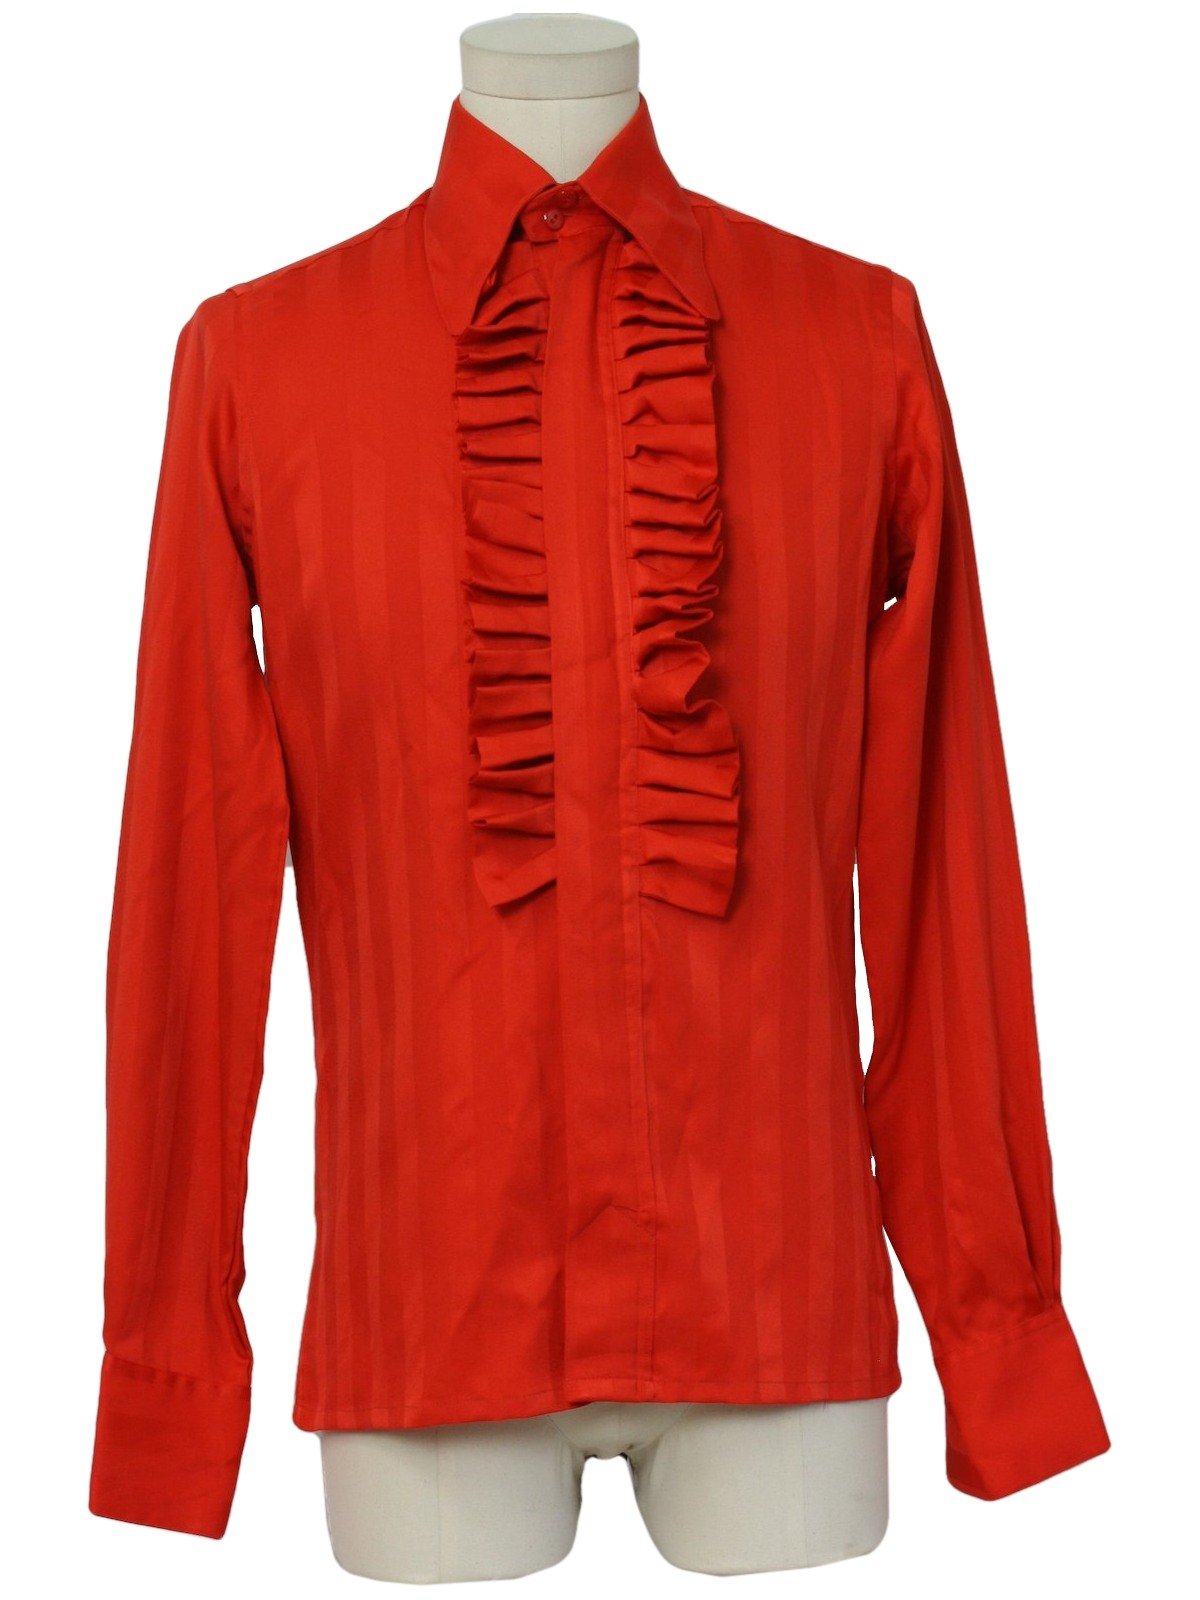 1970 39 s retro shirt 70s alex dallal mens red satiny for Red ruffled tuxedo shirt